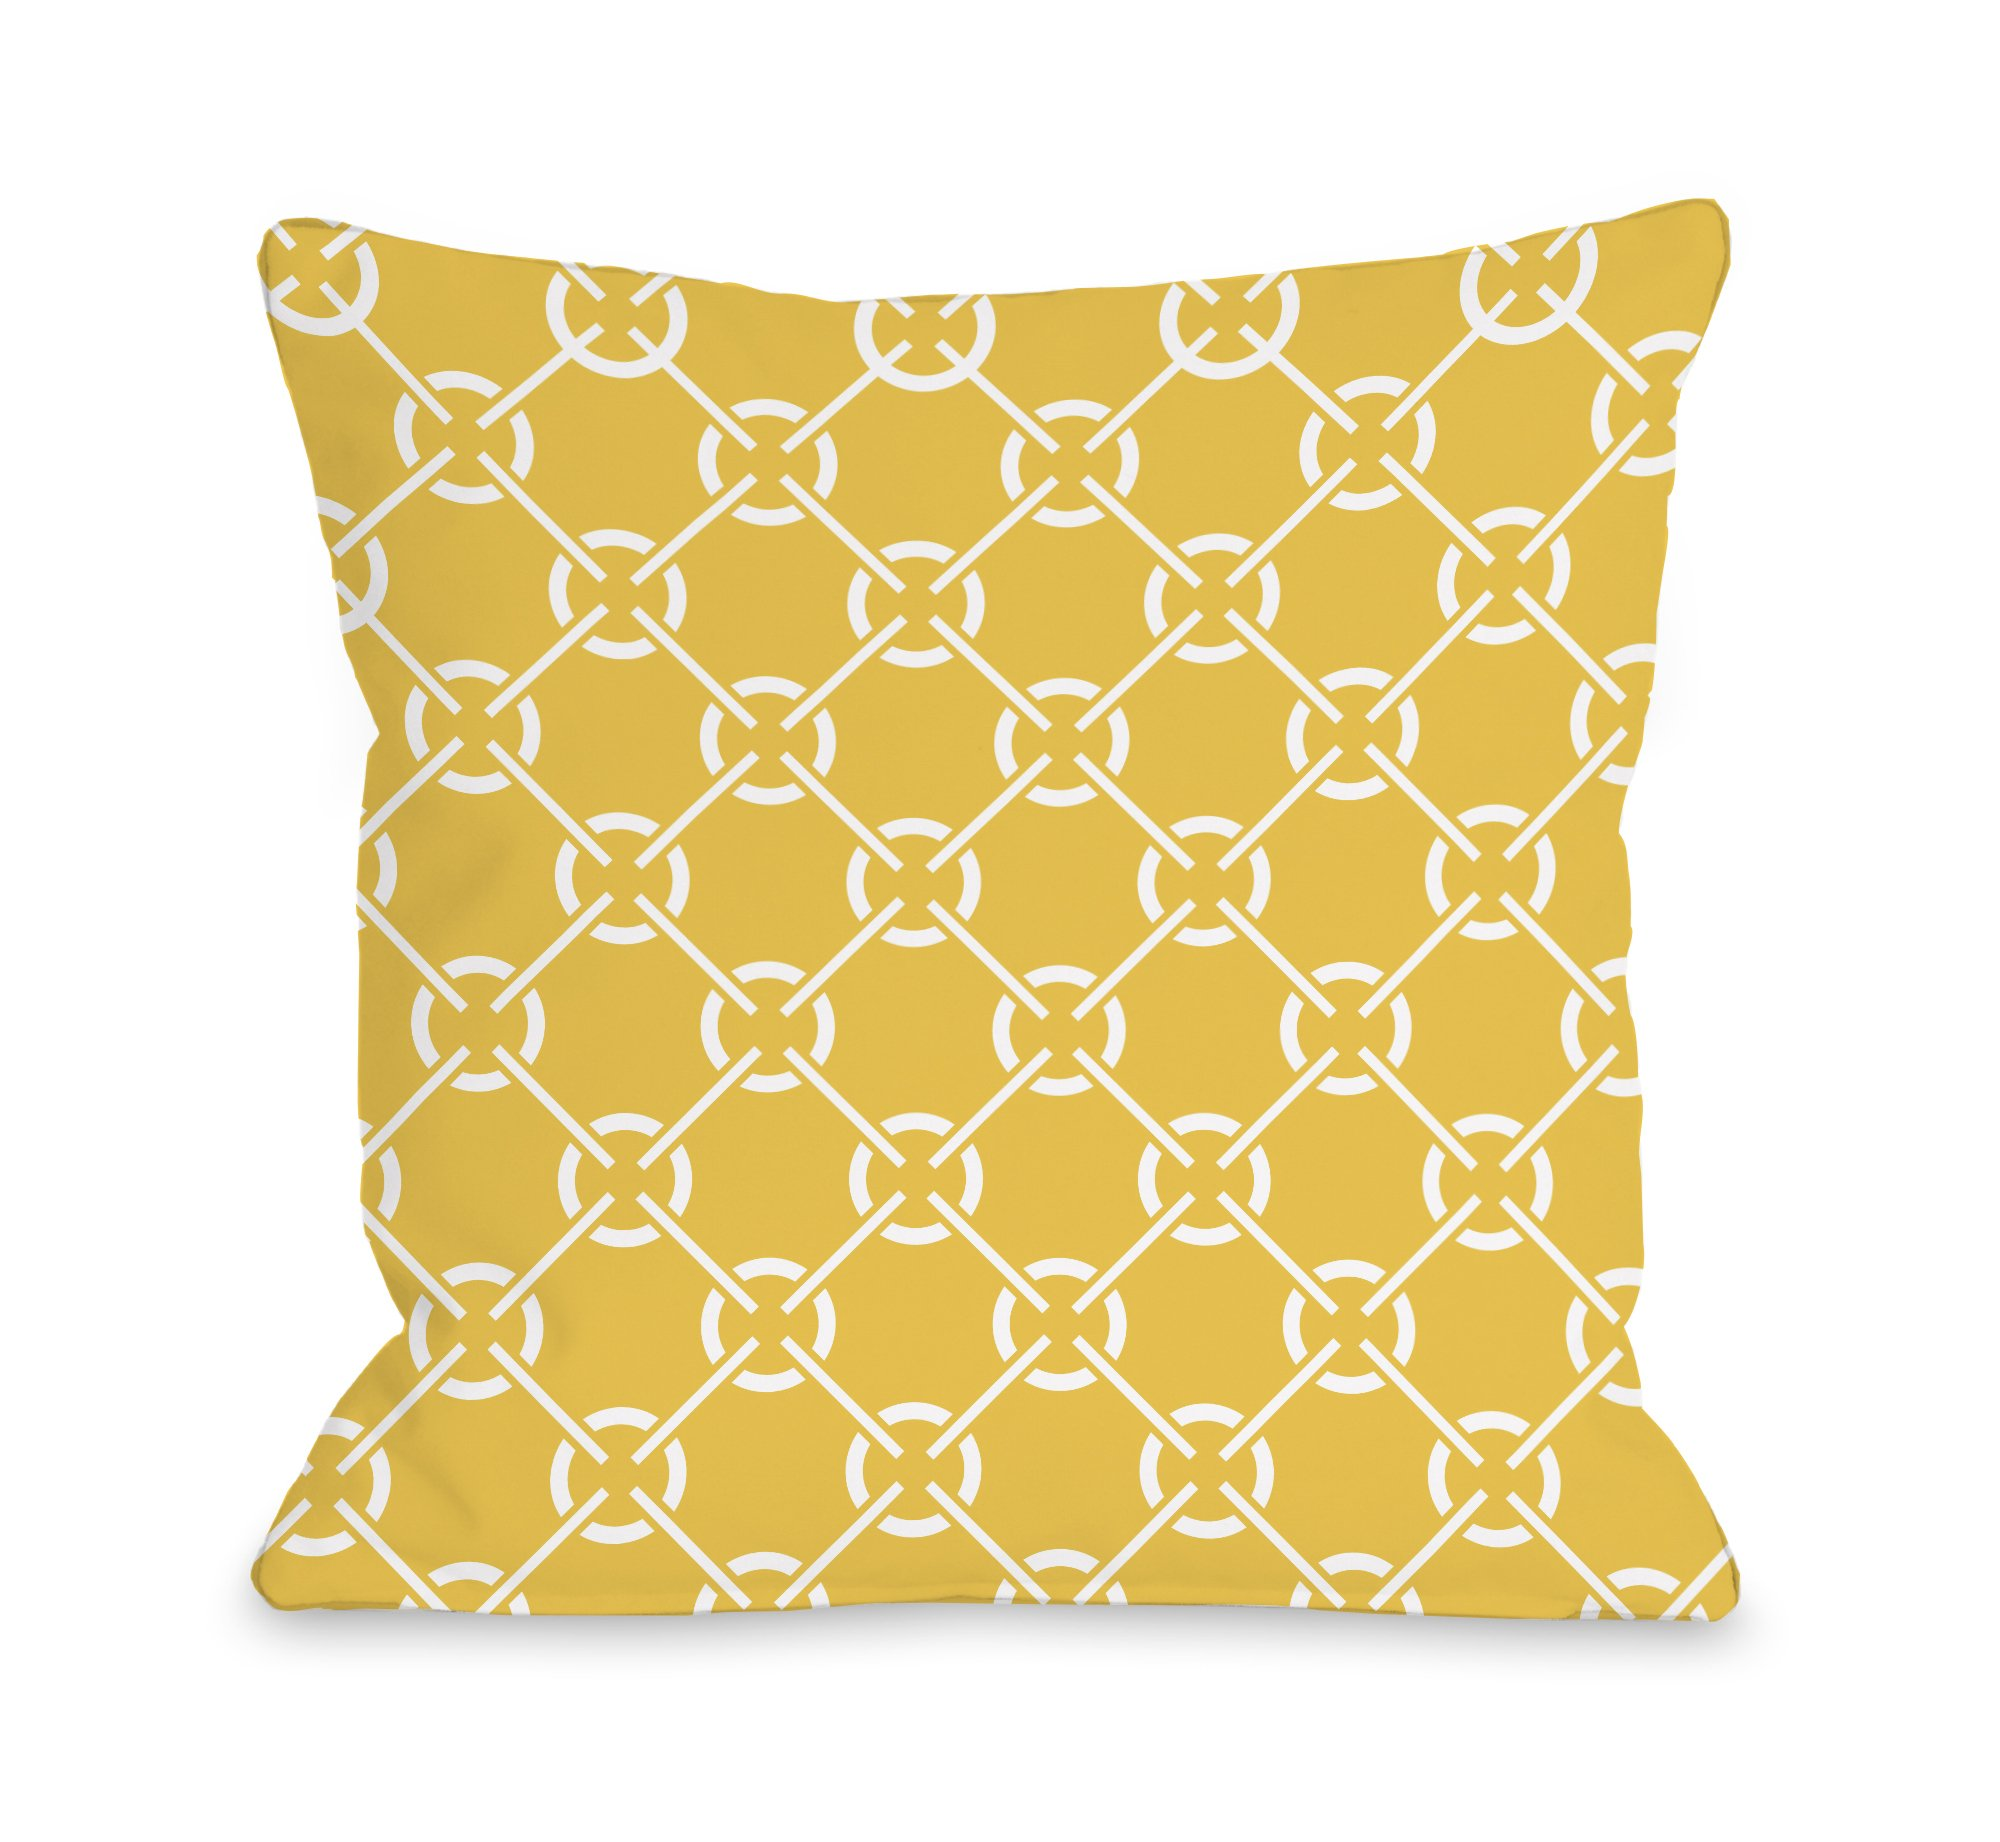 One Bella Casa Cecile's Circles Outdoor Throw Pillow by OBC, 16''x 16'', Solar Power